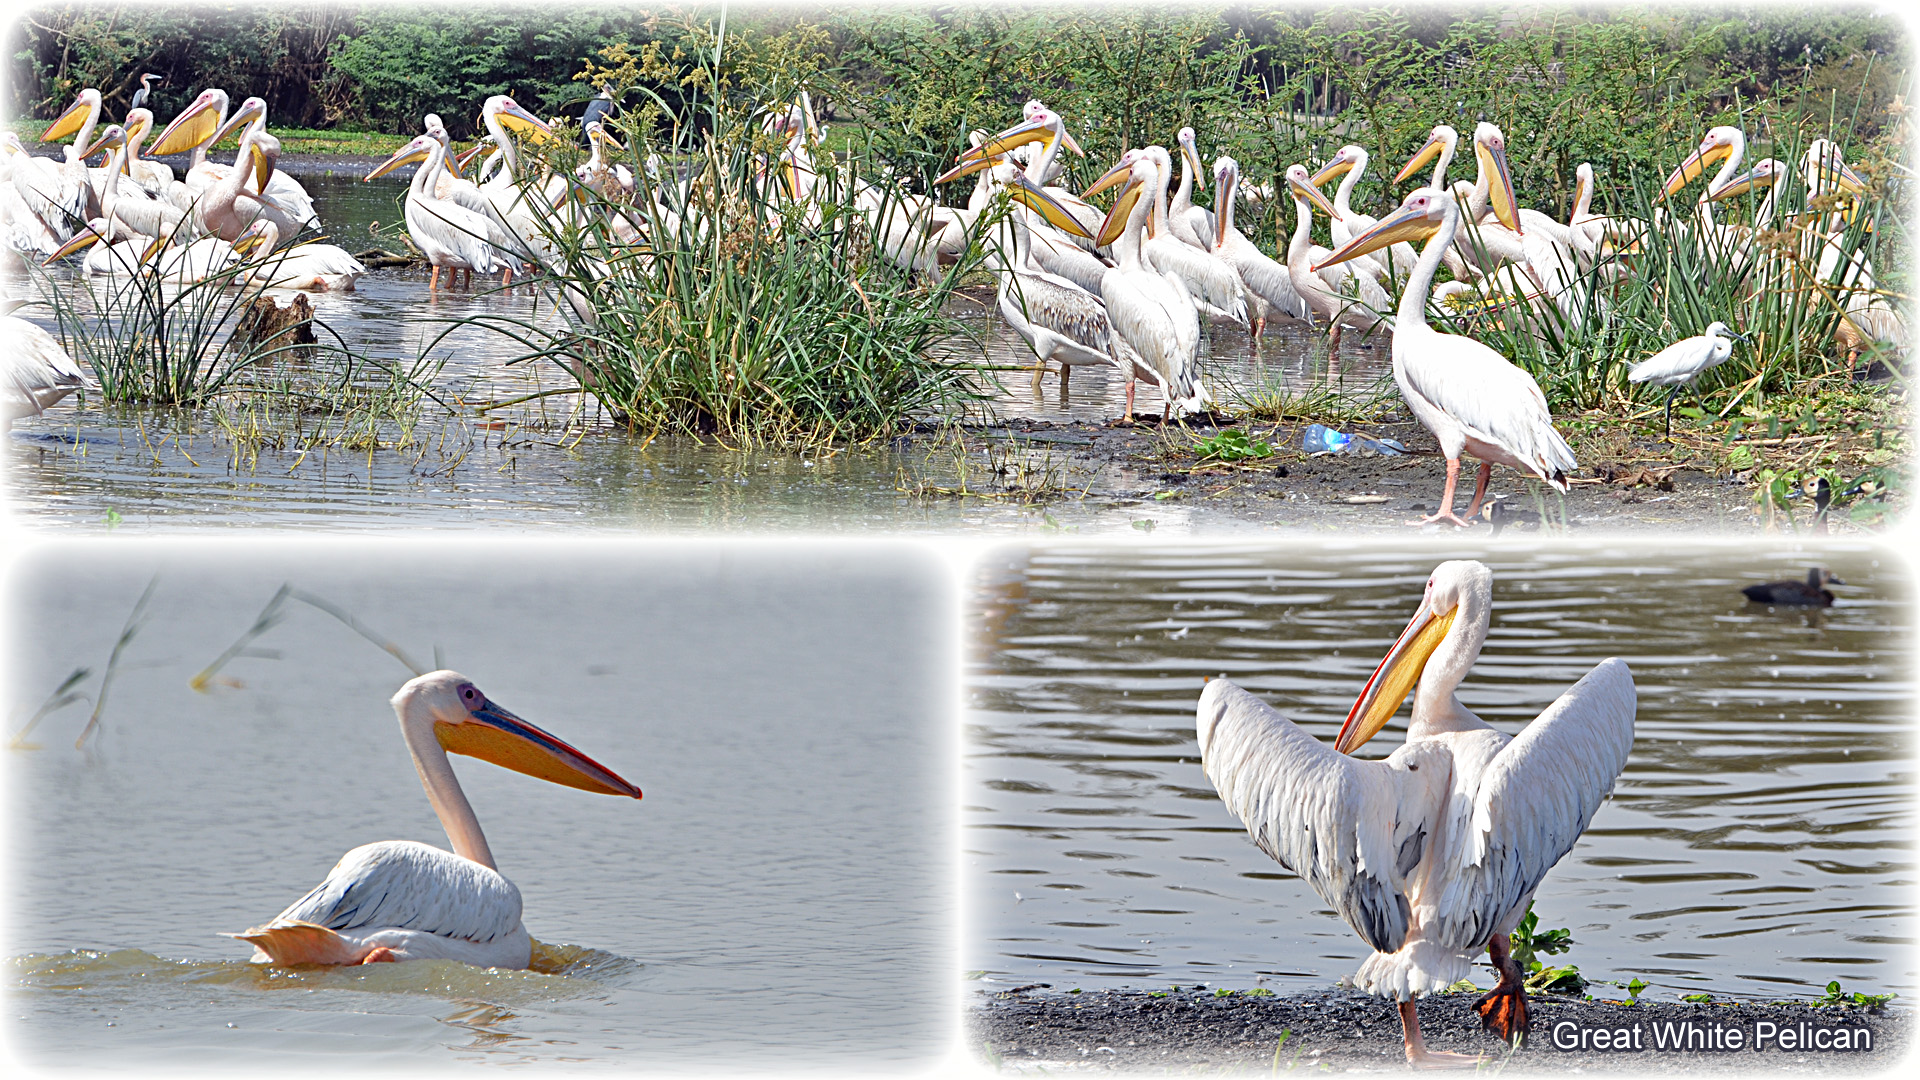 1a, Great White Pelican